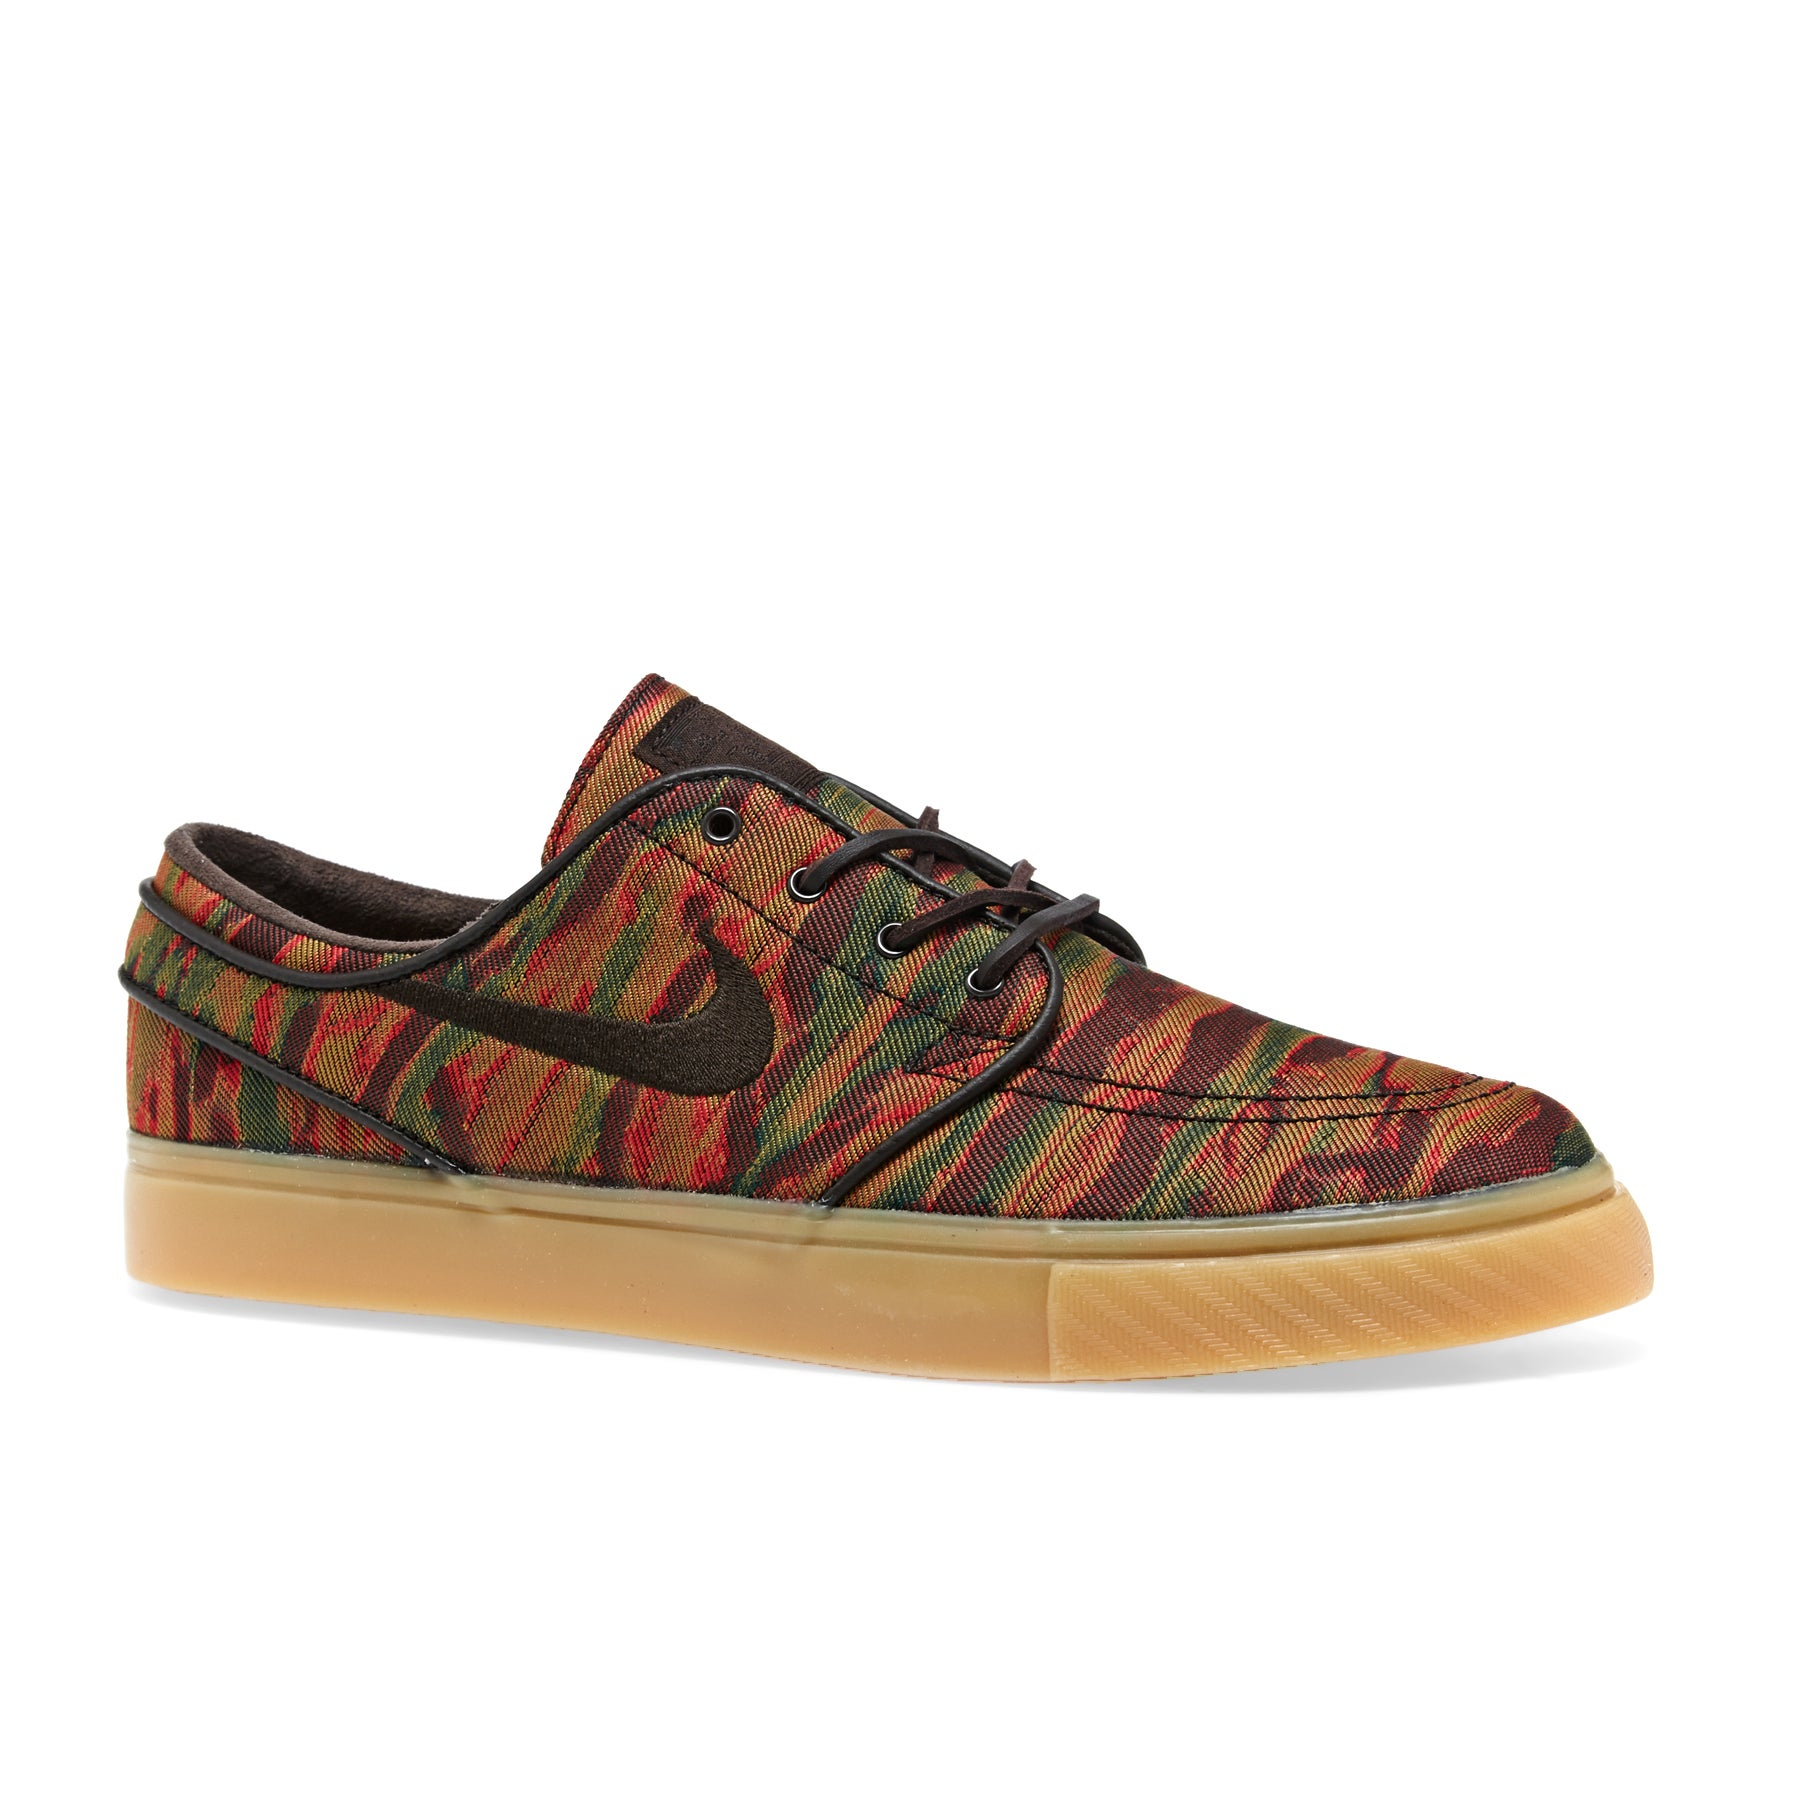 9b6cab2d6c Nike SB Zoom Stefan Janoski Canvas Premium Shoes available from Surfdome